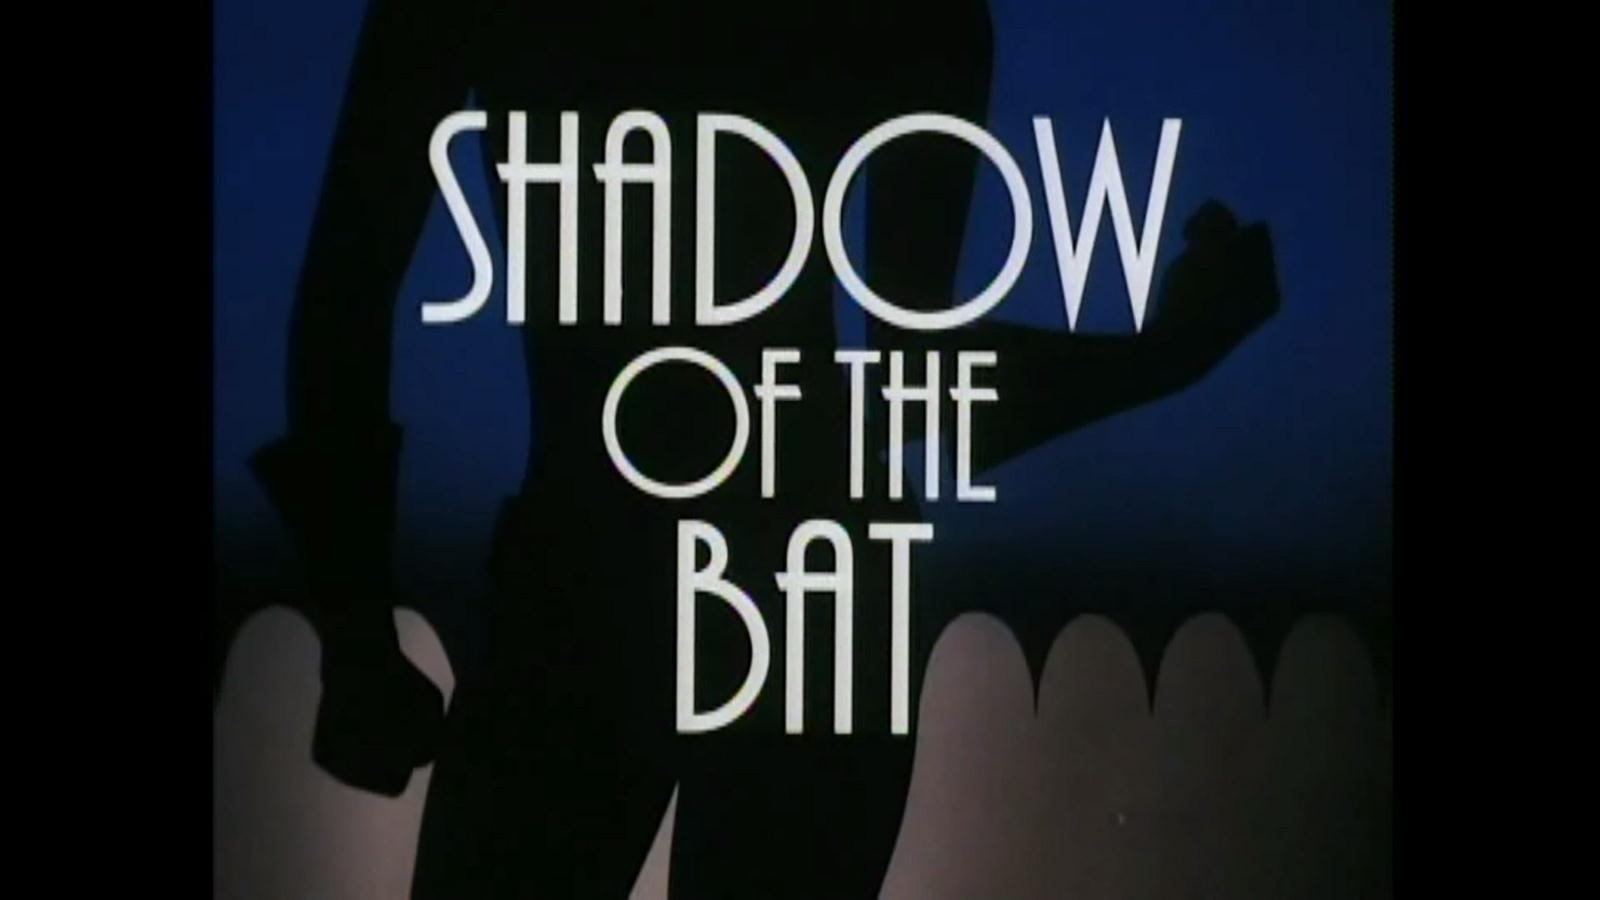 shadow of the bat title card